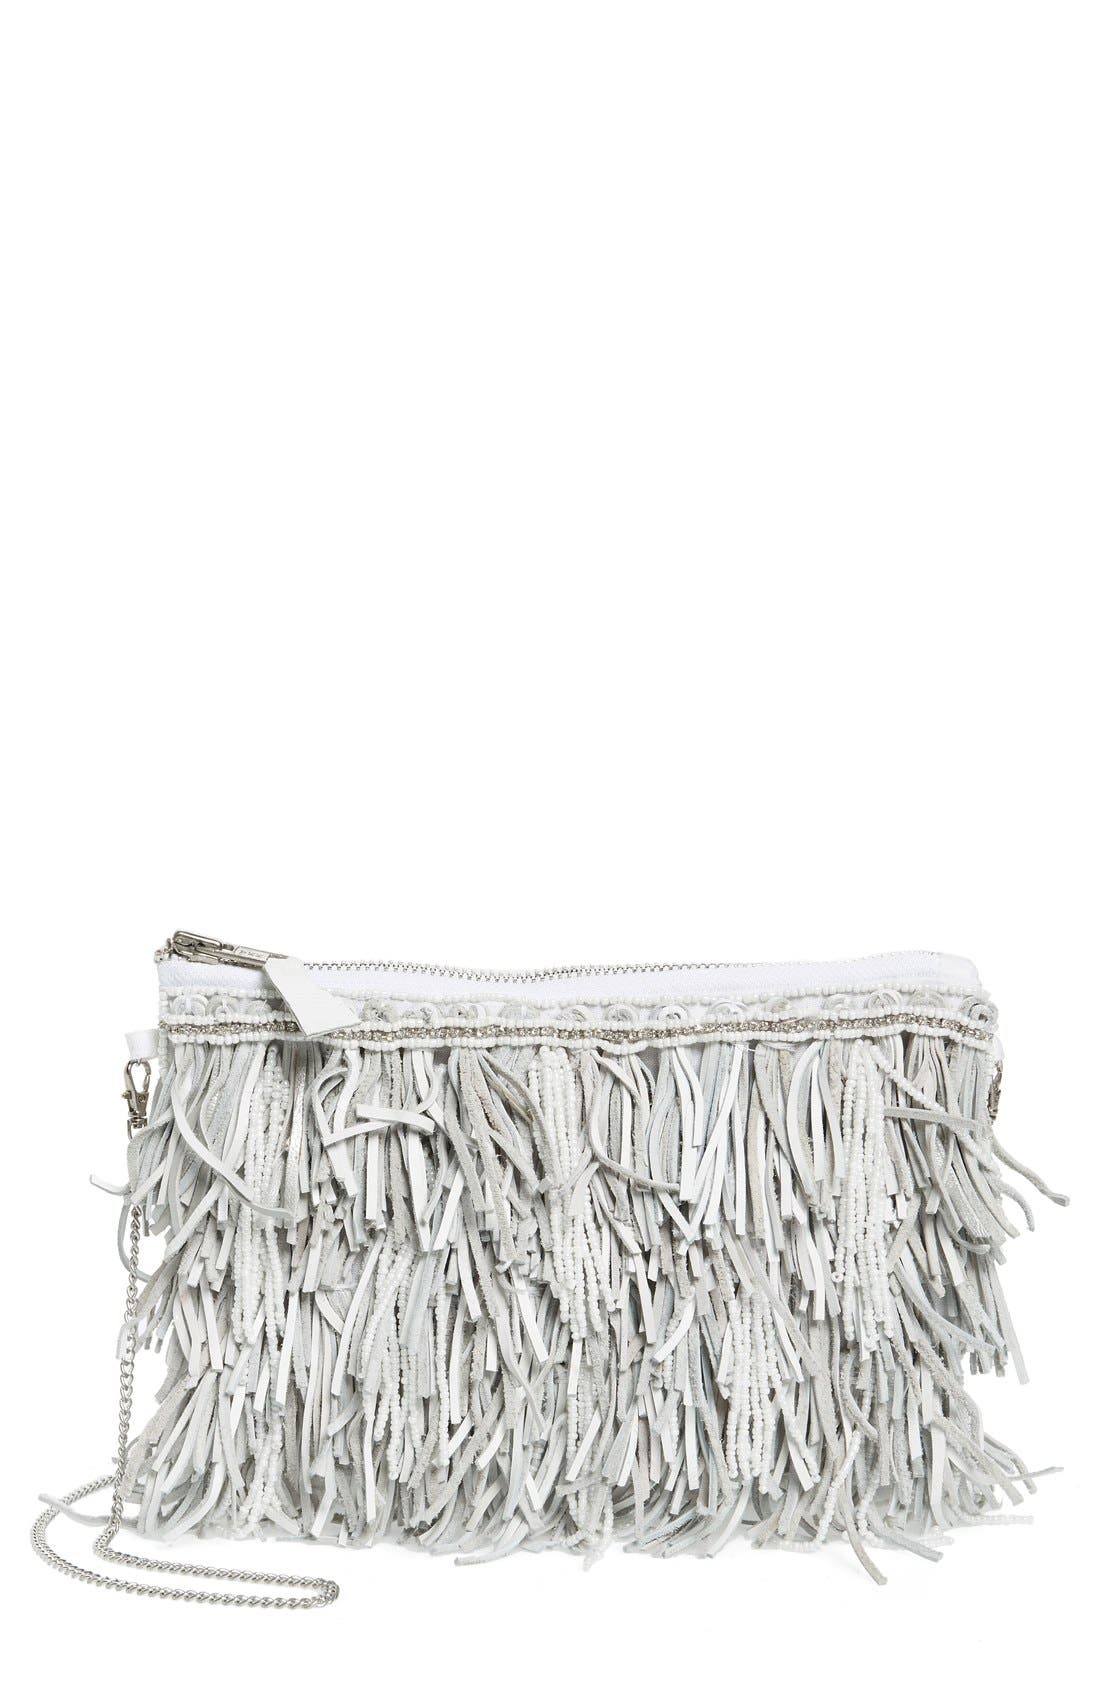 Main Image - G-lish Bead & Leather Fringe Crossbody Bag